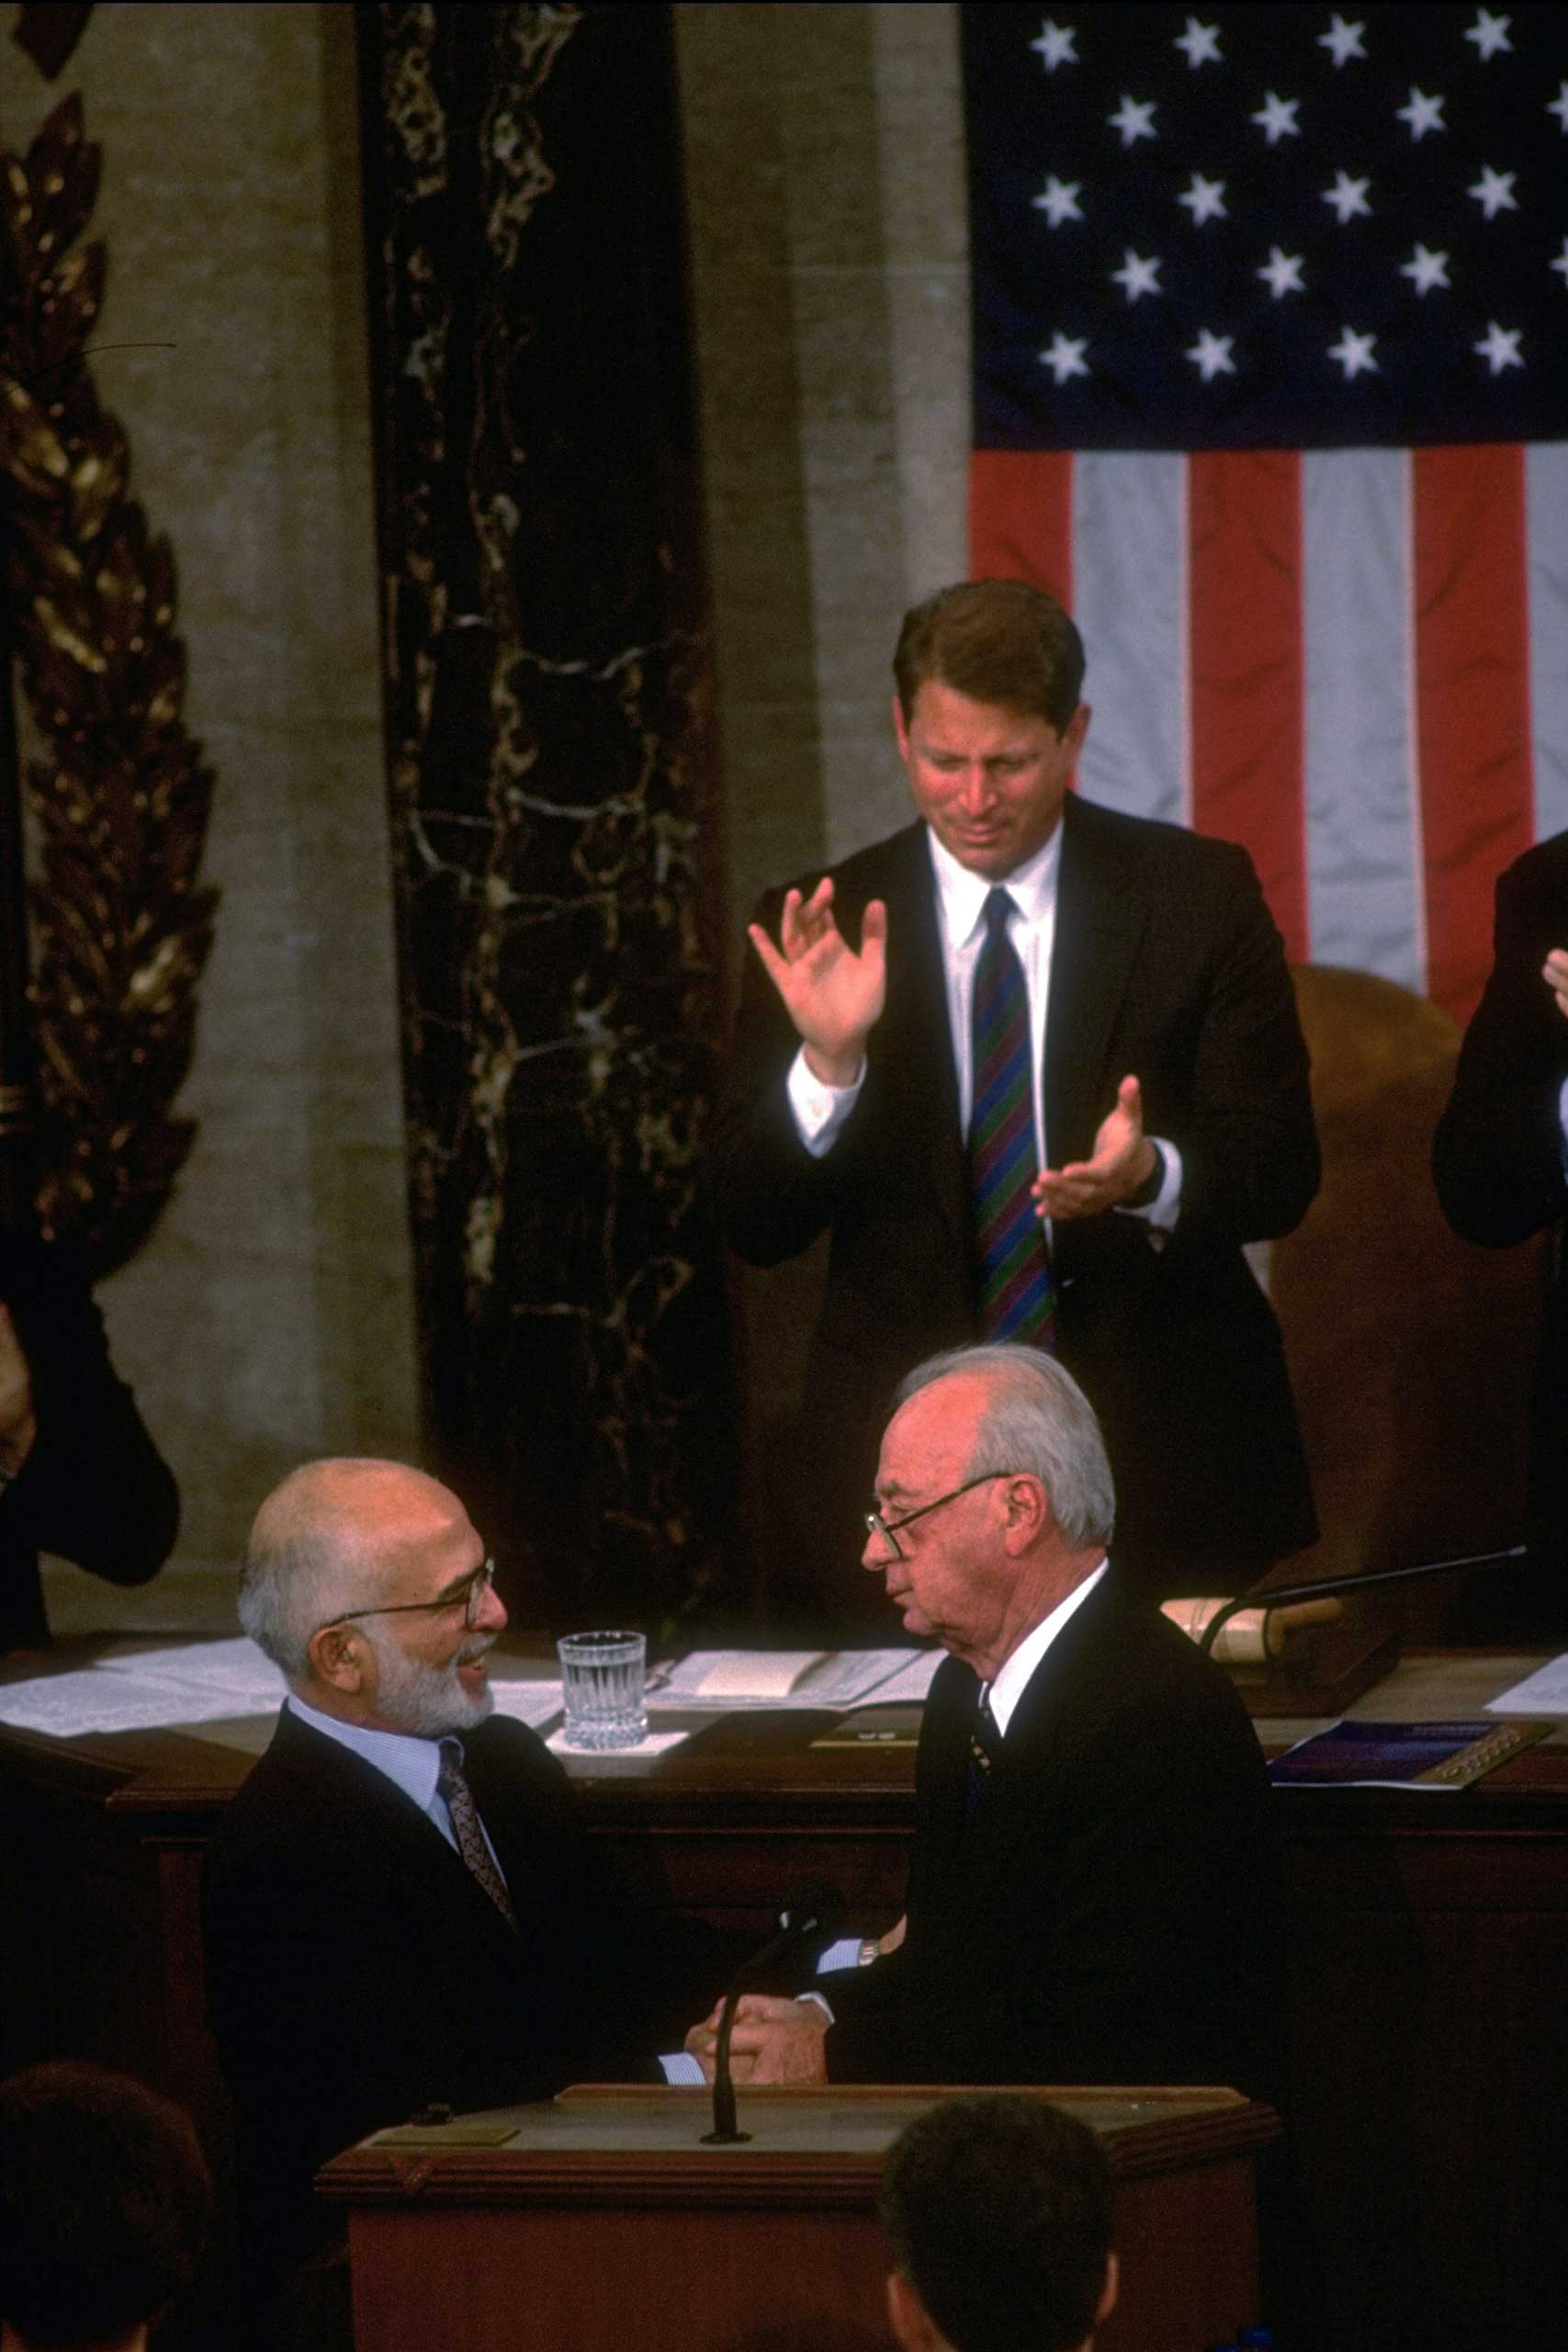 <b>Yitzhak Rabin, Israeli Prime Minister, and King Hussein of Jordan</b> shake hands following a joint address to Congress on July 26, 1994. In the second of two Arab-Israeli appearances, Jordan's leader appeared with Israel's prime minister to celebrate their peace treaty. The treaty, signed the next month, ended a 46-year state of war.